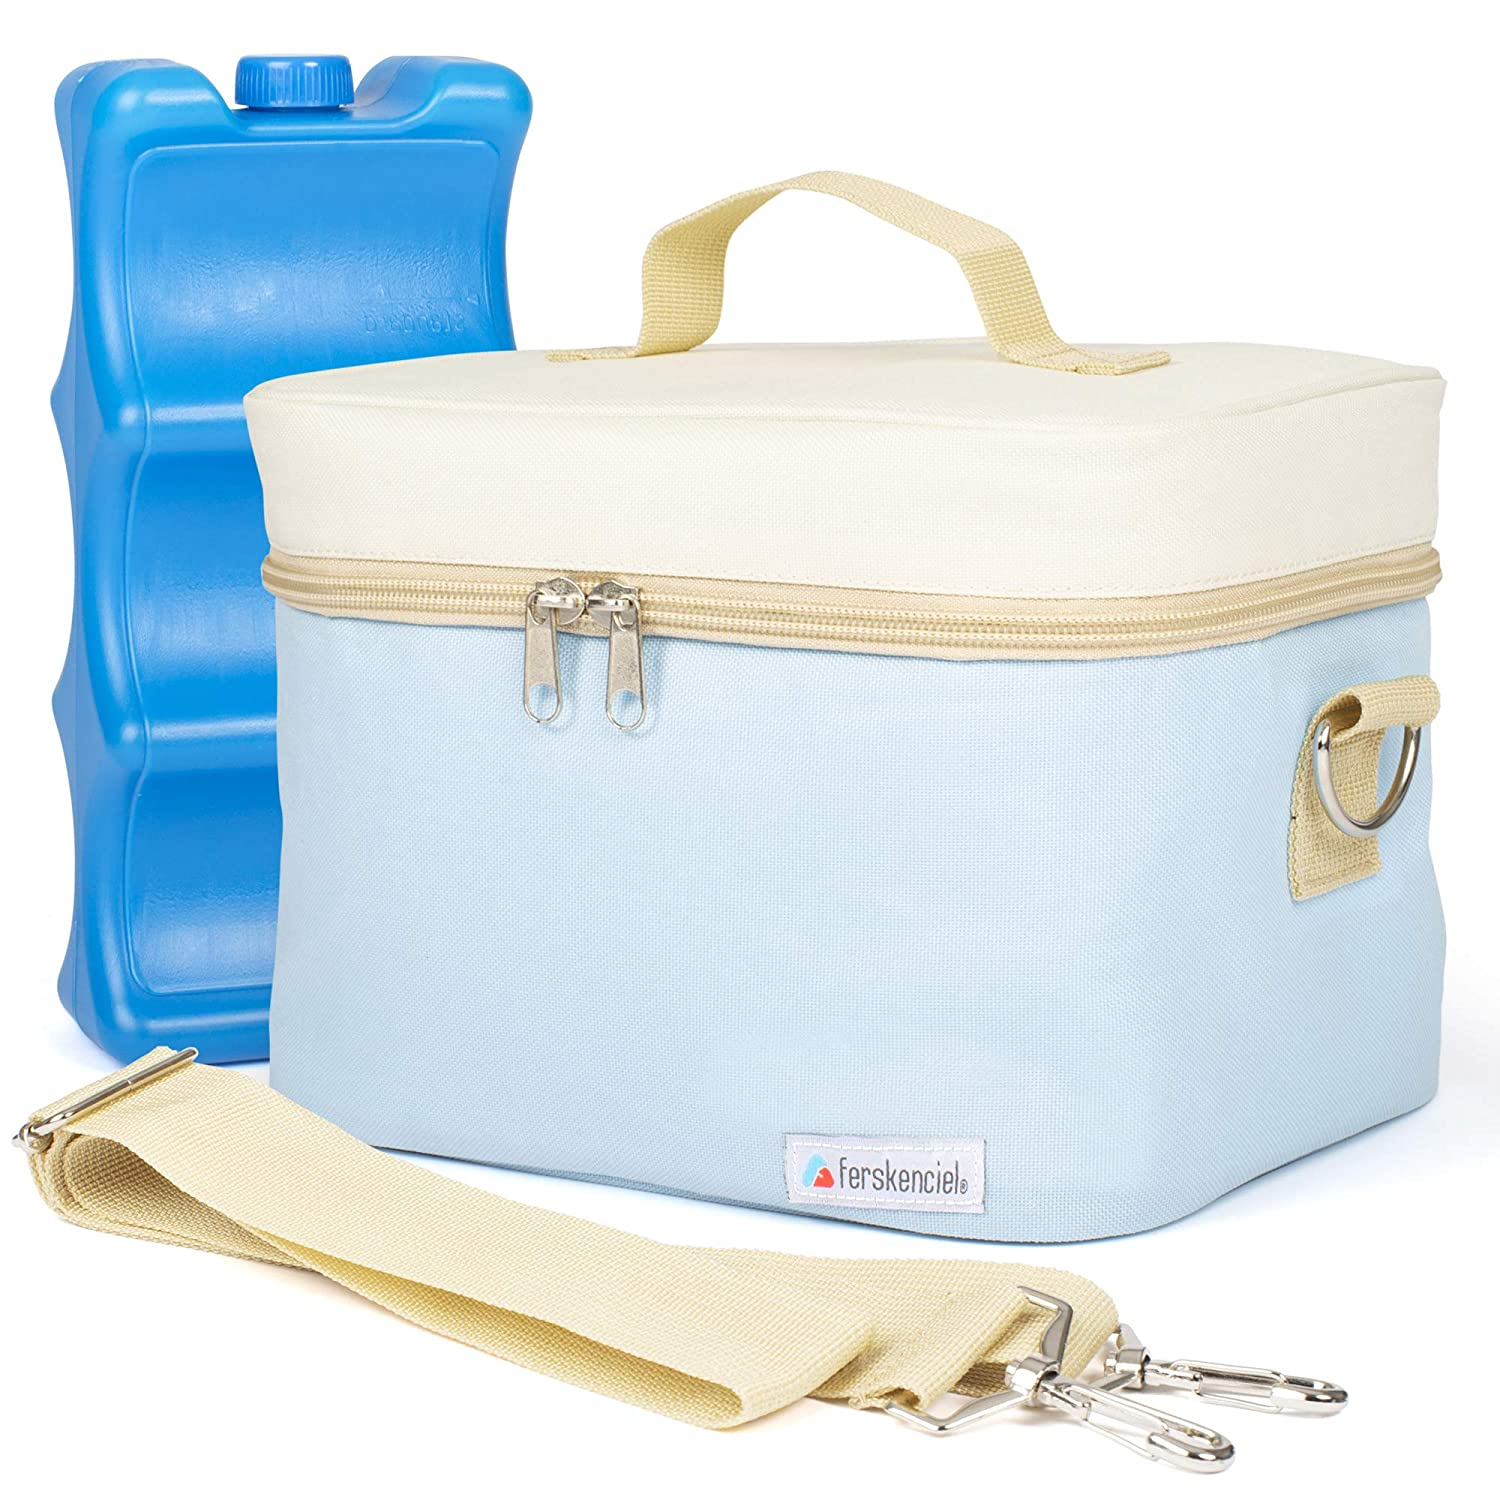 Ferskenciel Breastmilk Cooler Bag (Morning Sky) - Large Portable Insulated Storage with Ice Pack for Baby Bottles, Food & Drinks - Easy-Wipe Lining, Shoulder Strap, Double Zippered Carry Tote - 8-Hour